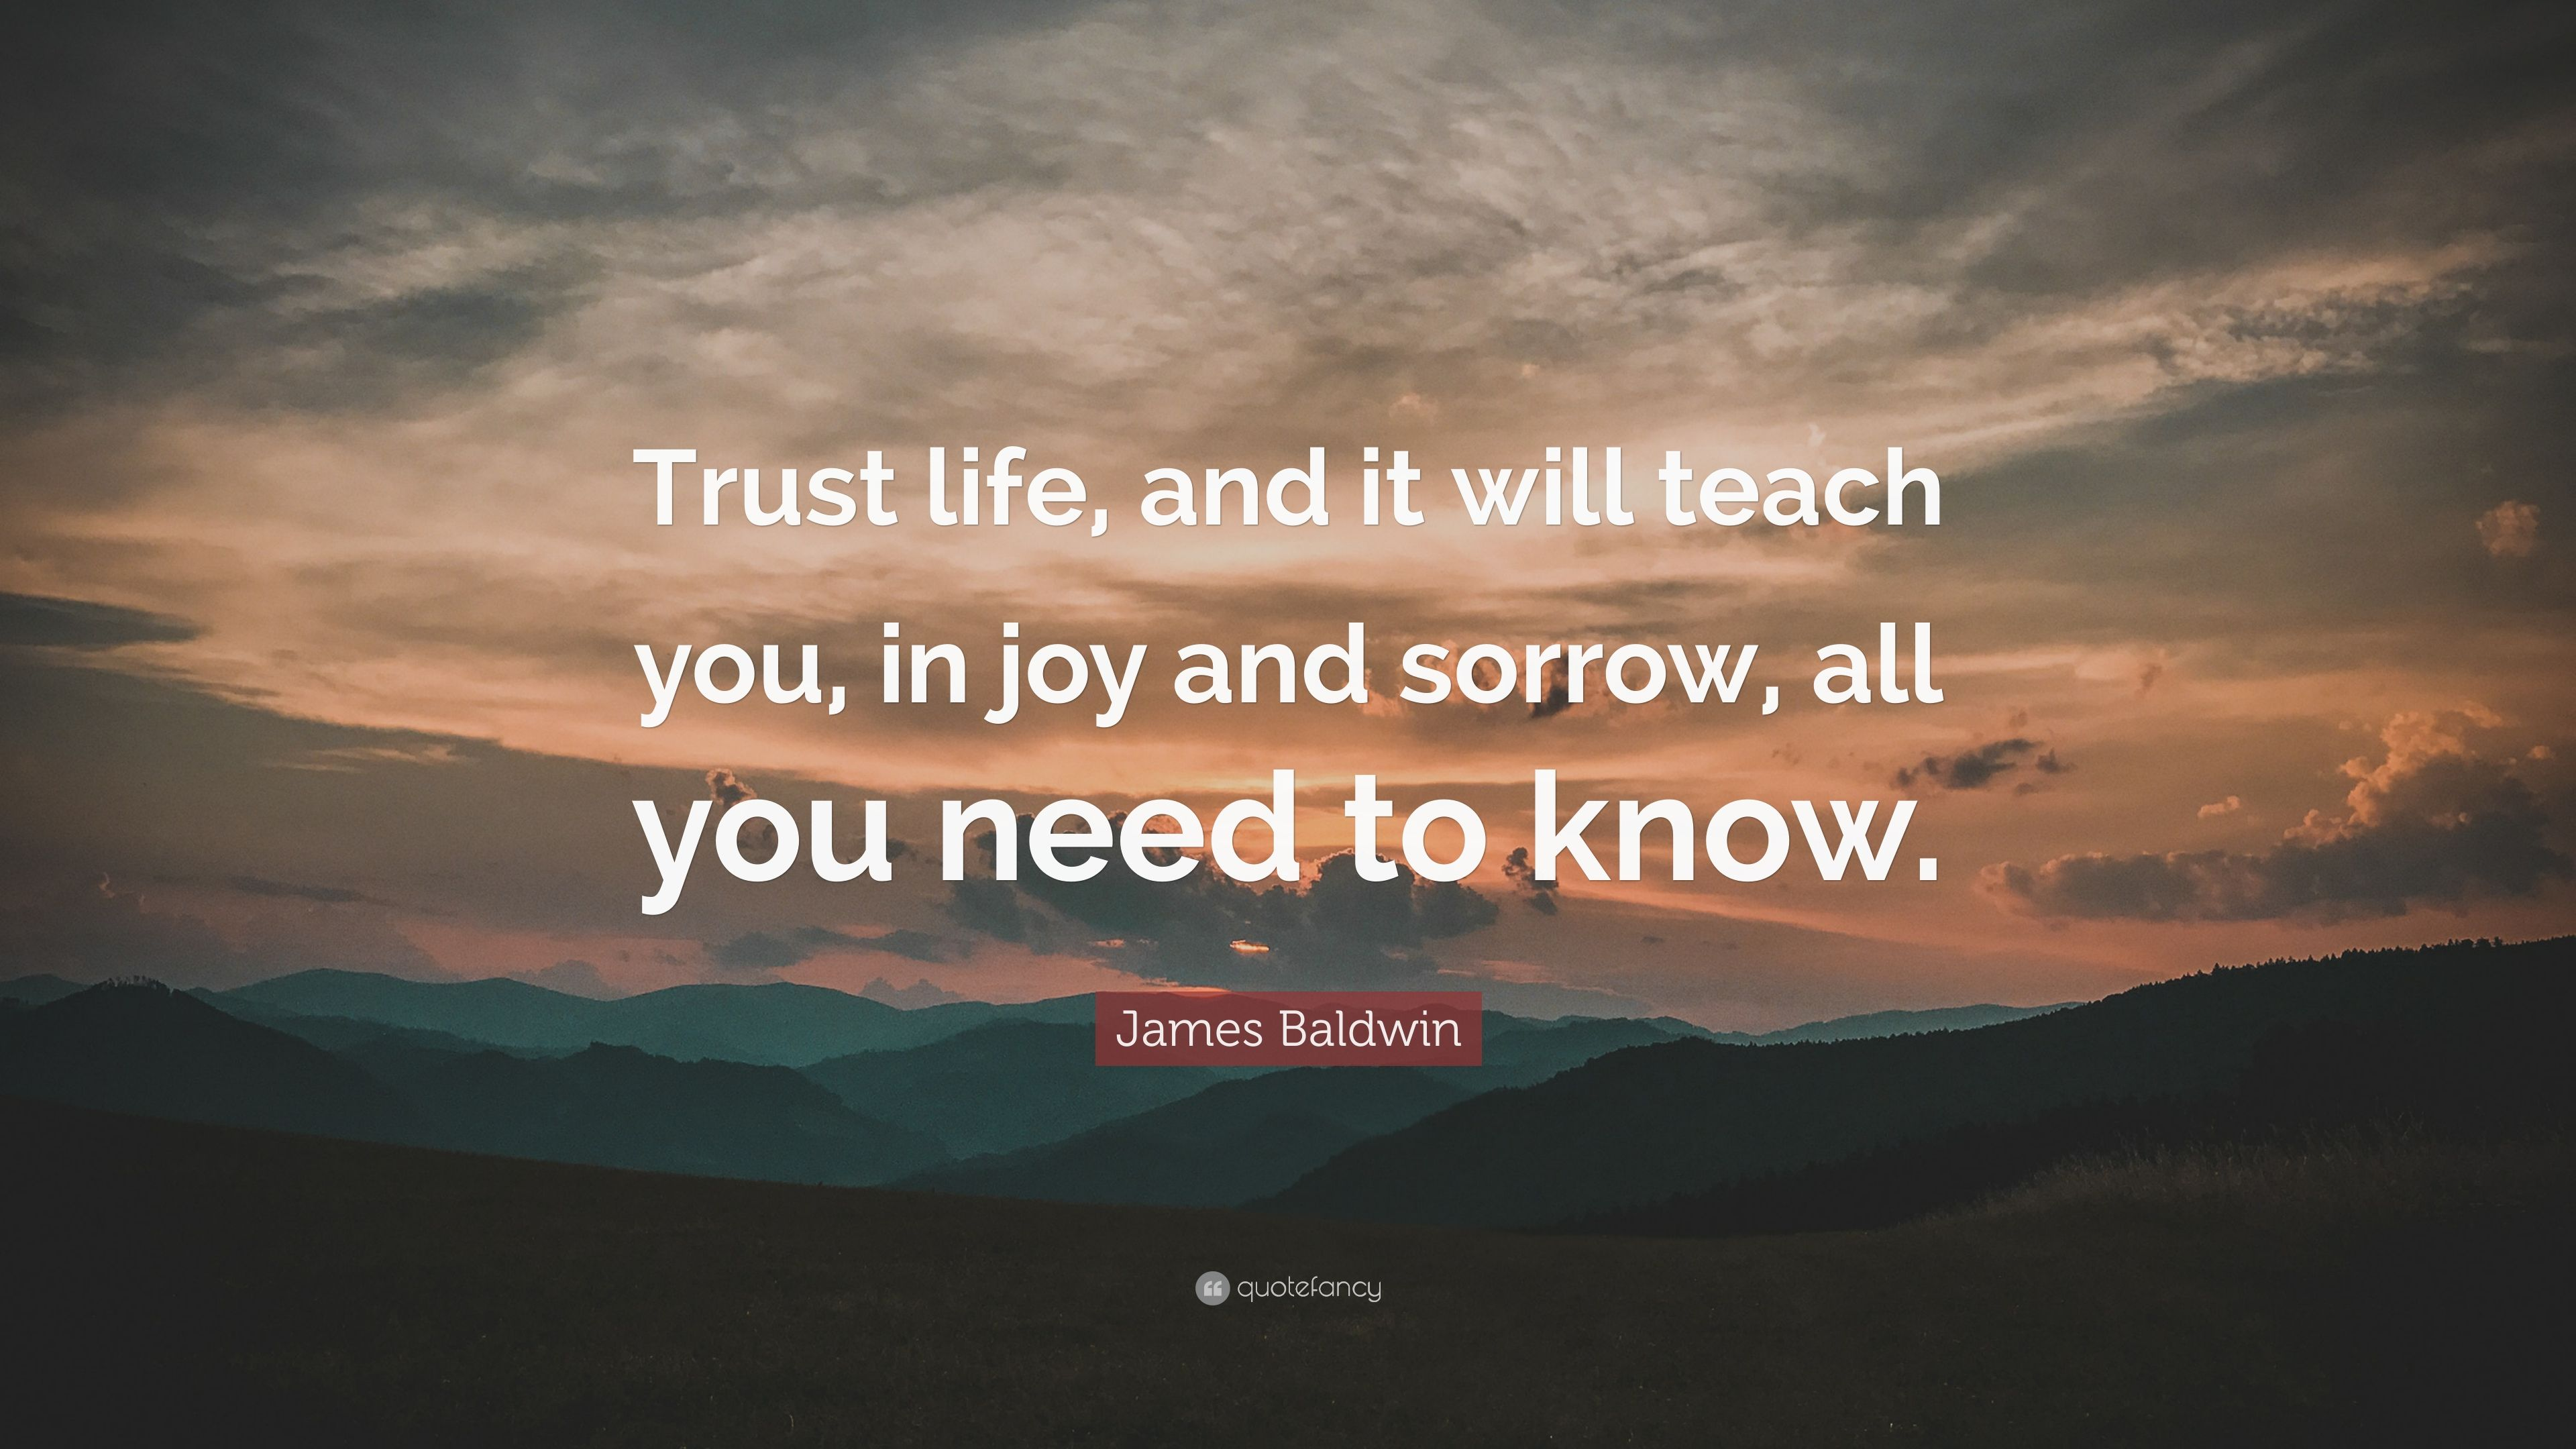 4747714-James-Baldwin-Quote-Trust-life-and-it-will-teach-you-in-joy-and